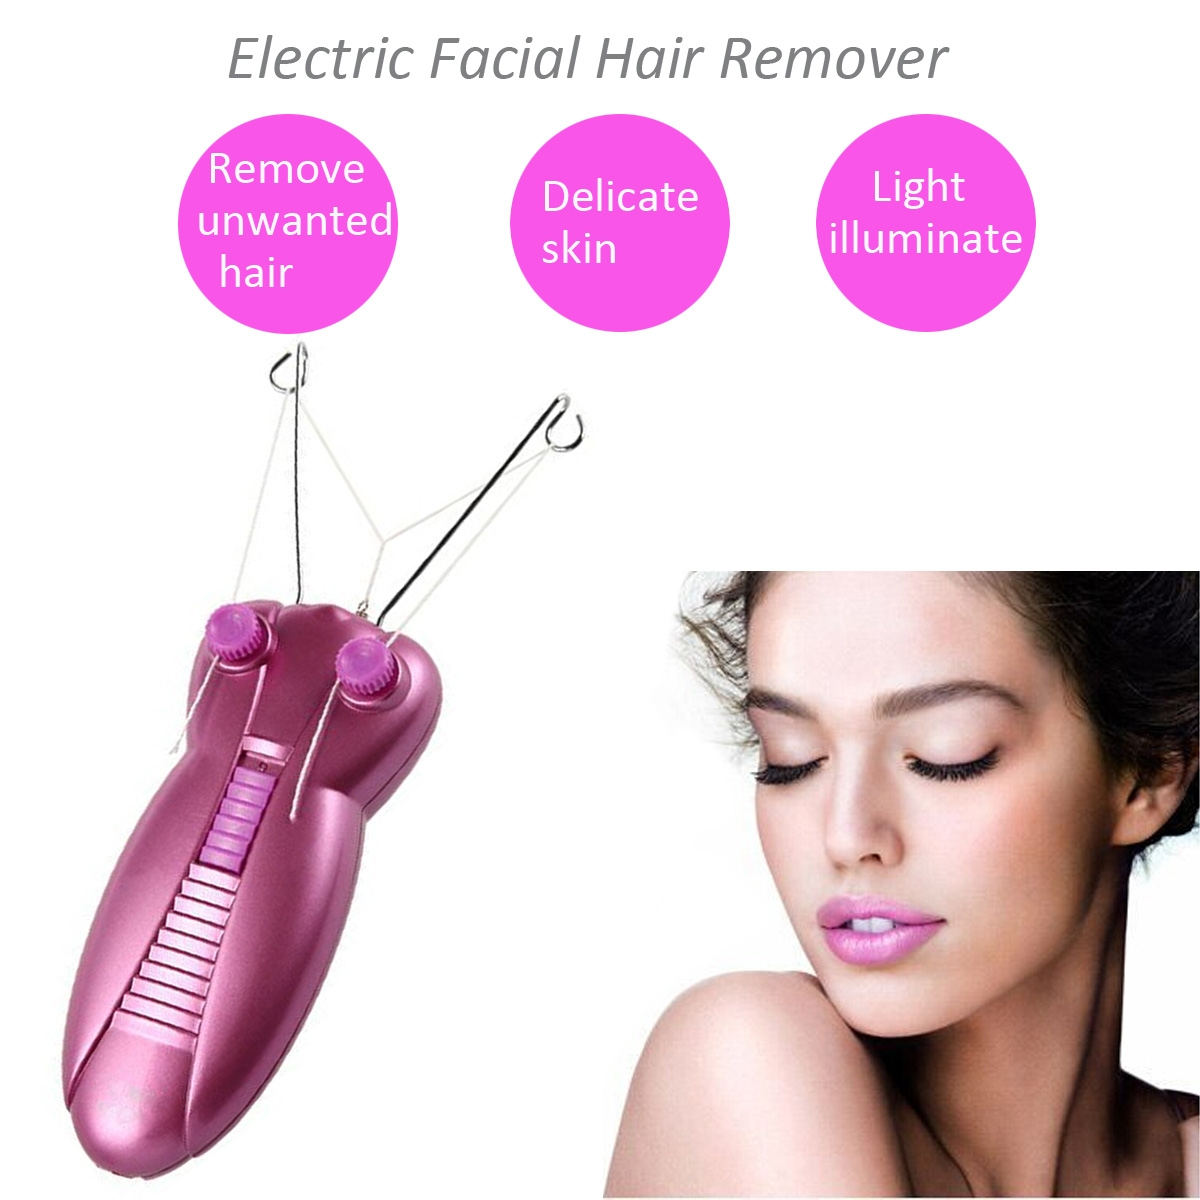 Nice 1set Professional Electric Female Body Face Facial Hair Remover Cotton Thread Depilator Shaver Lady Beauty Care Machine Hair Removal Cream Beauty & Health